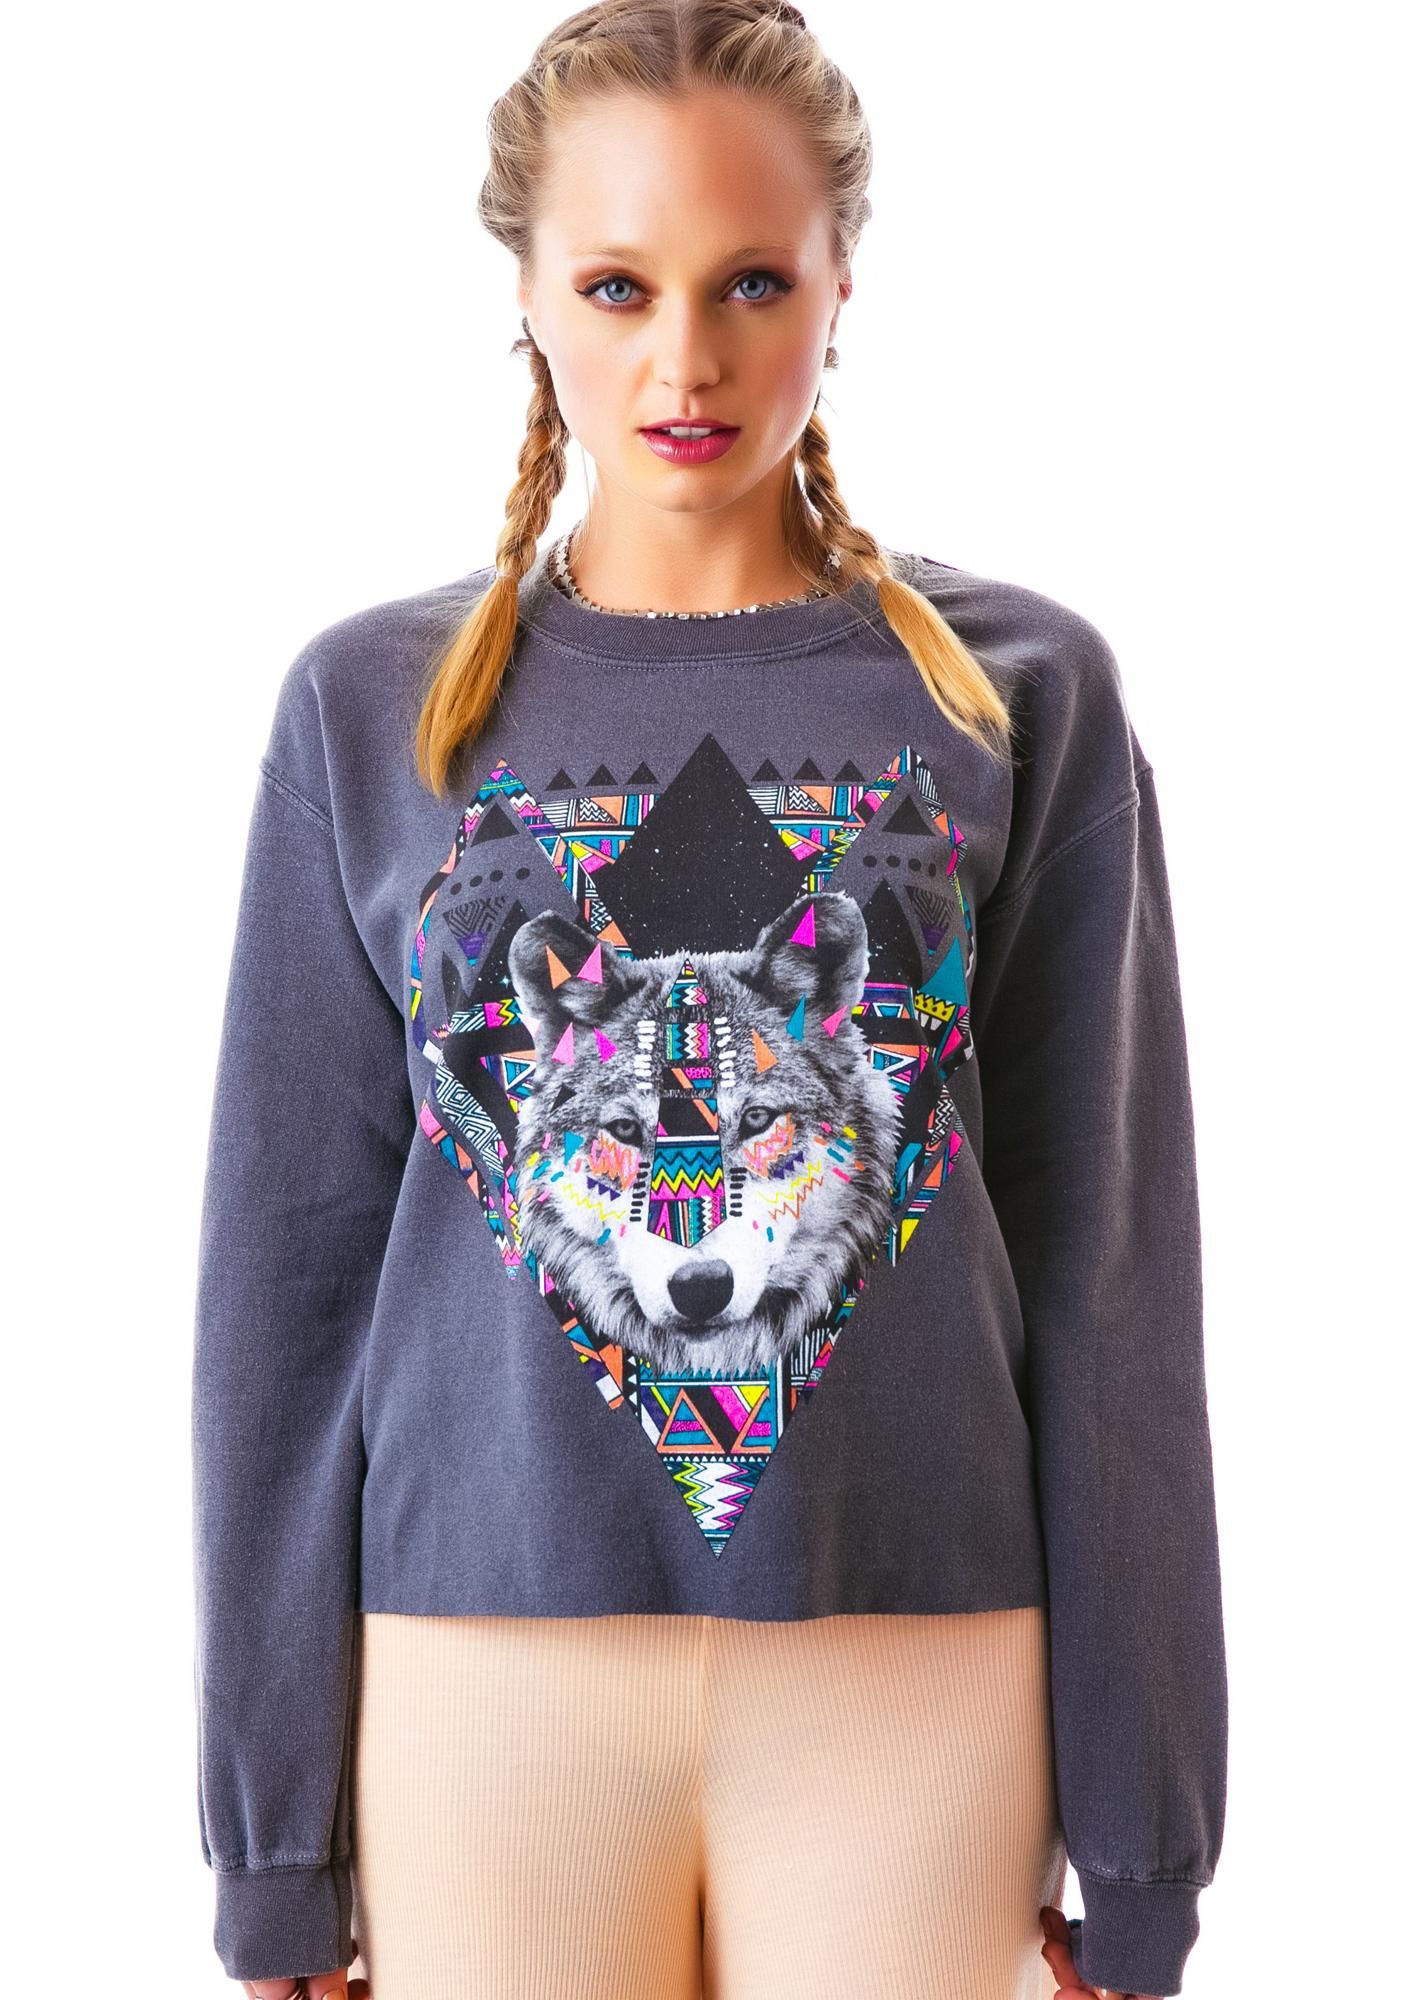 Spirit of Motion Sweatshirt